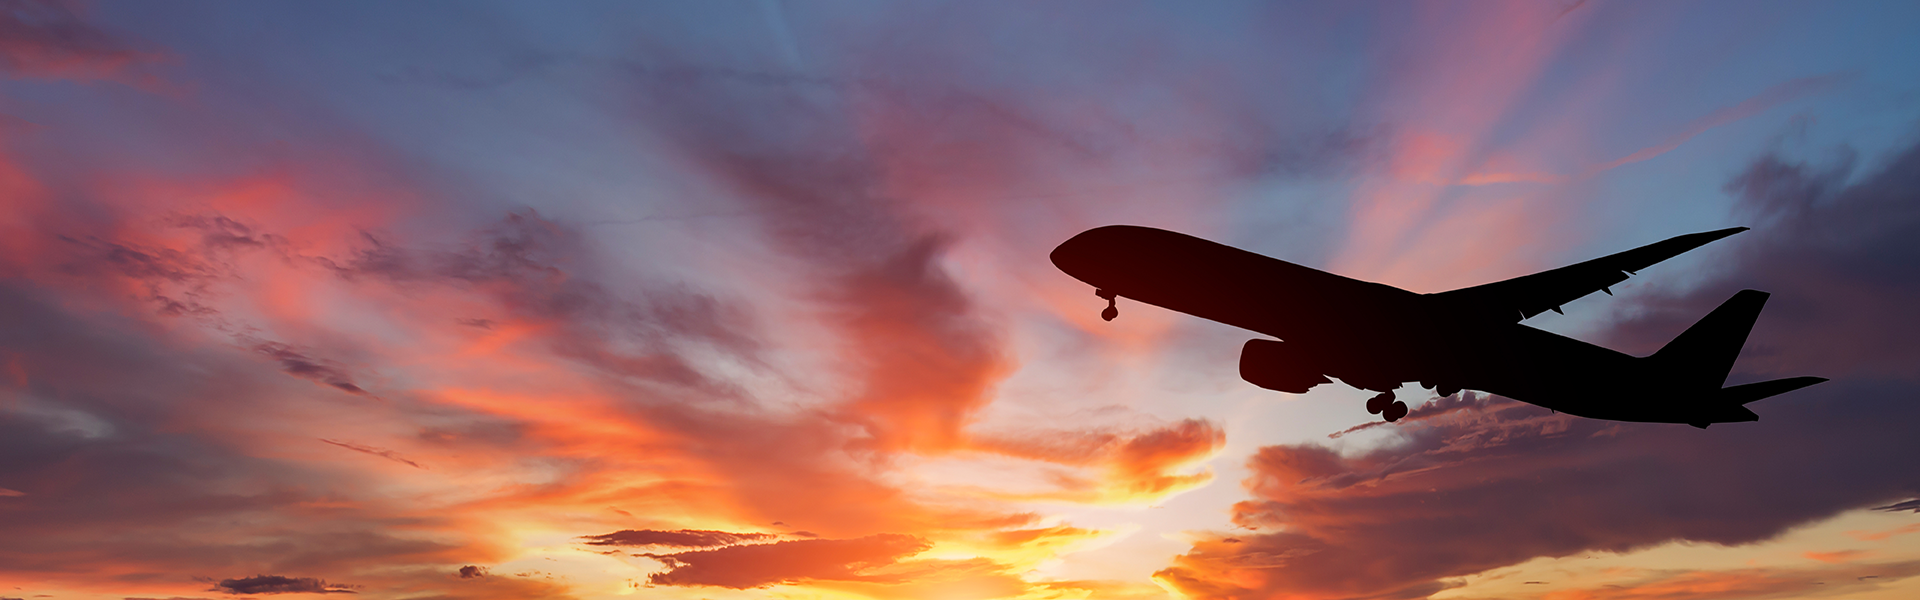 From below, the sihlouette of an airplane ascending toward a partly cloudy sky at sunset.